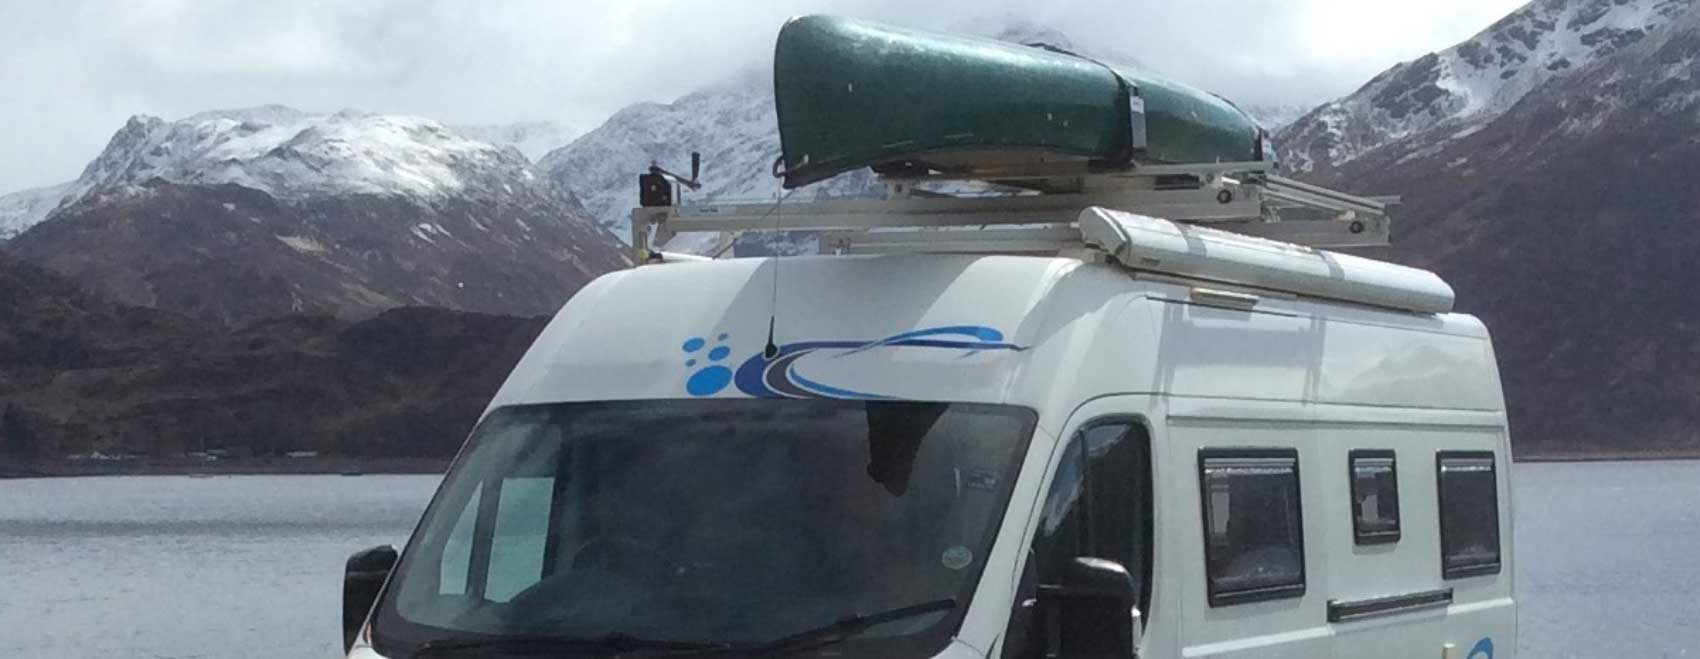 Karitek's Easy Load Roof Rack - transforms loading kayaks and canoes onto cars and vans